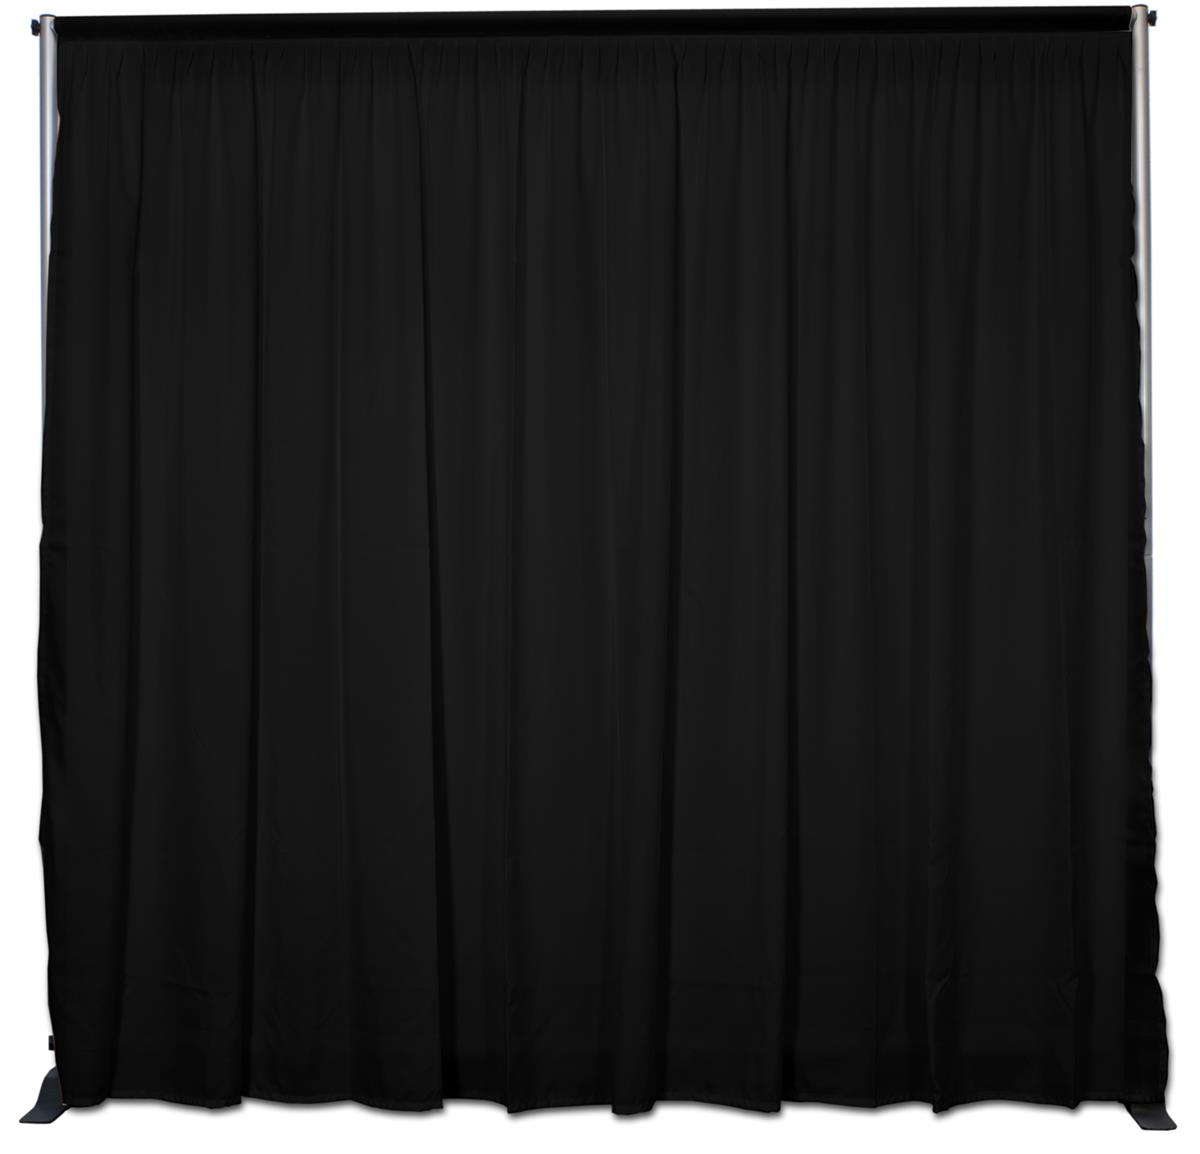 Displays2go Booth Backdrops Include Black Fabric Curtain